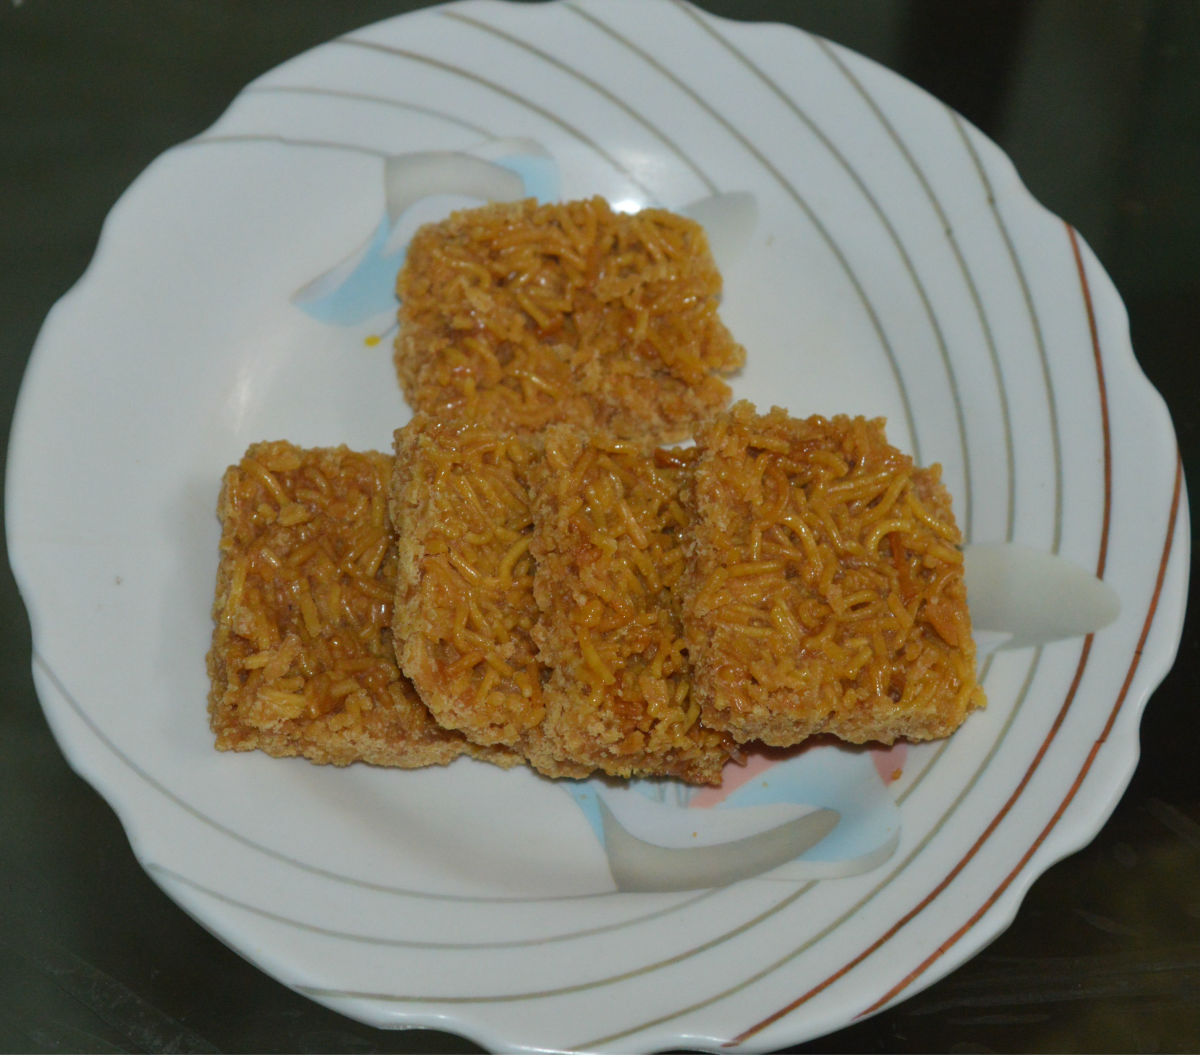 Sev chikki (sweet and crunchy gram flour noodle bars)